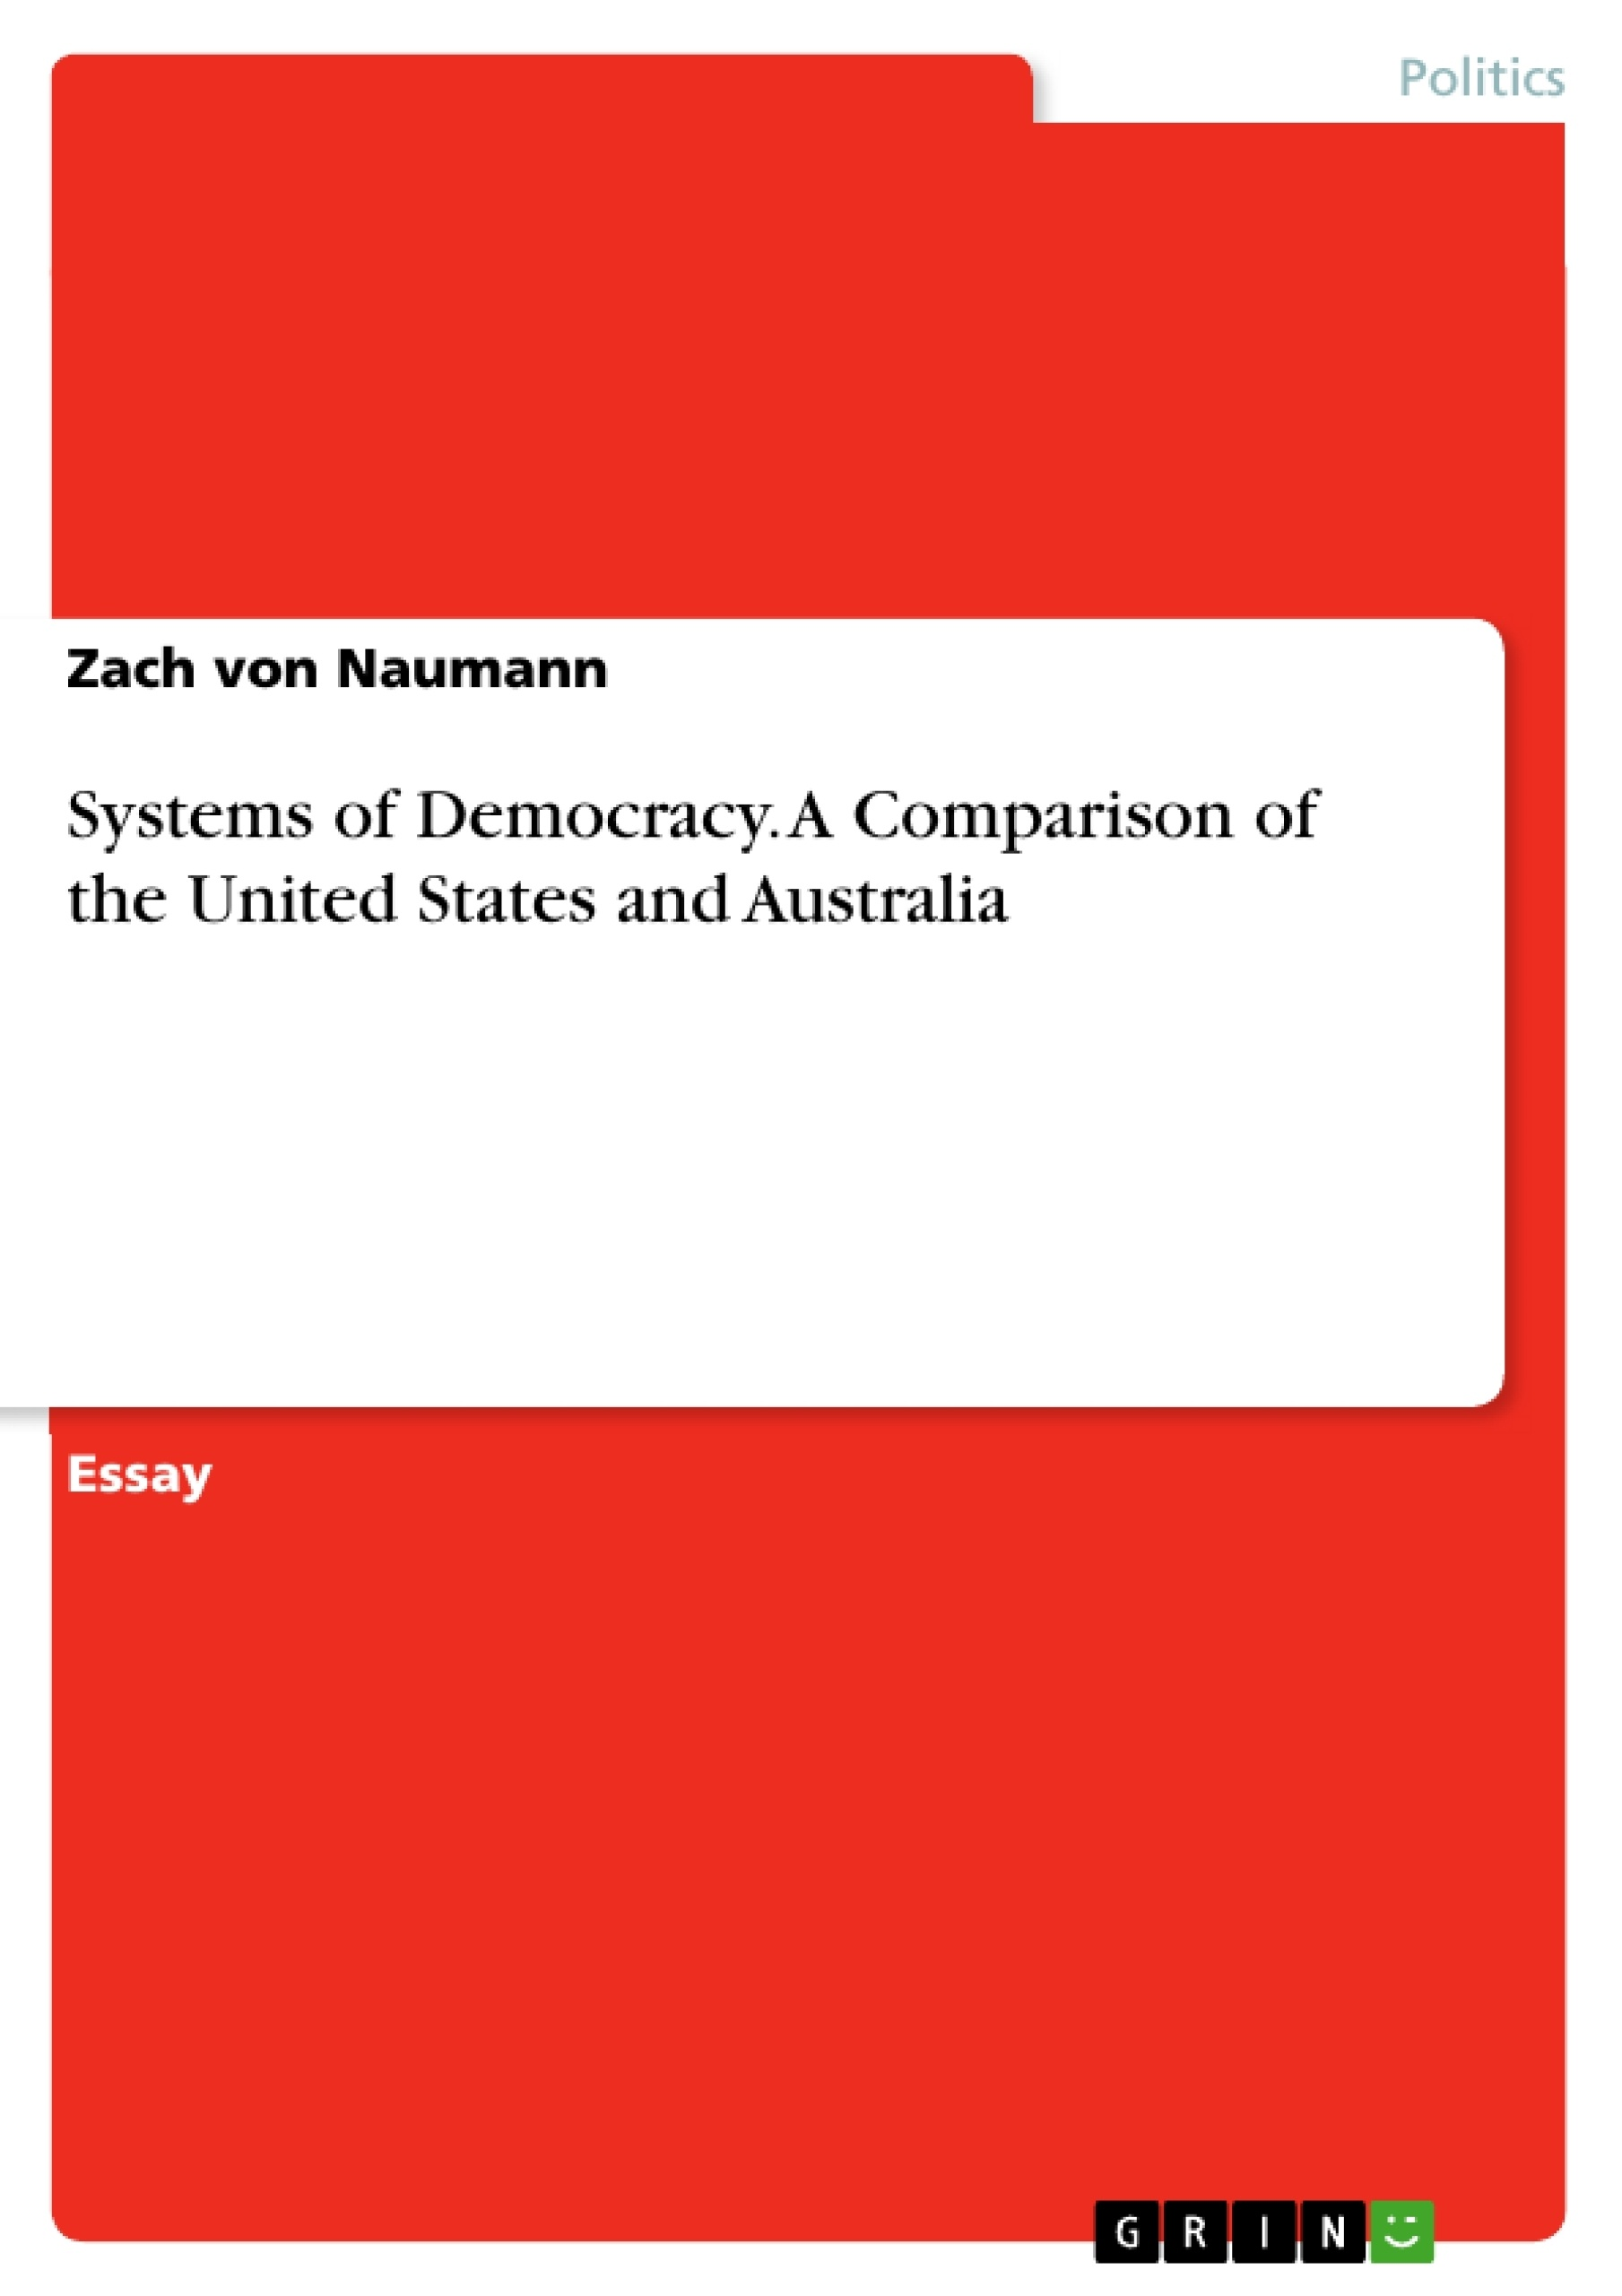 Title: Systems of Democracy. A Comparison of the United States and Australia